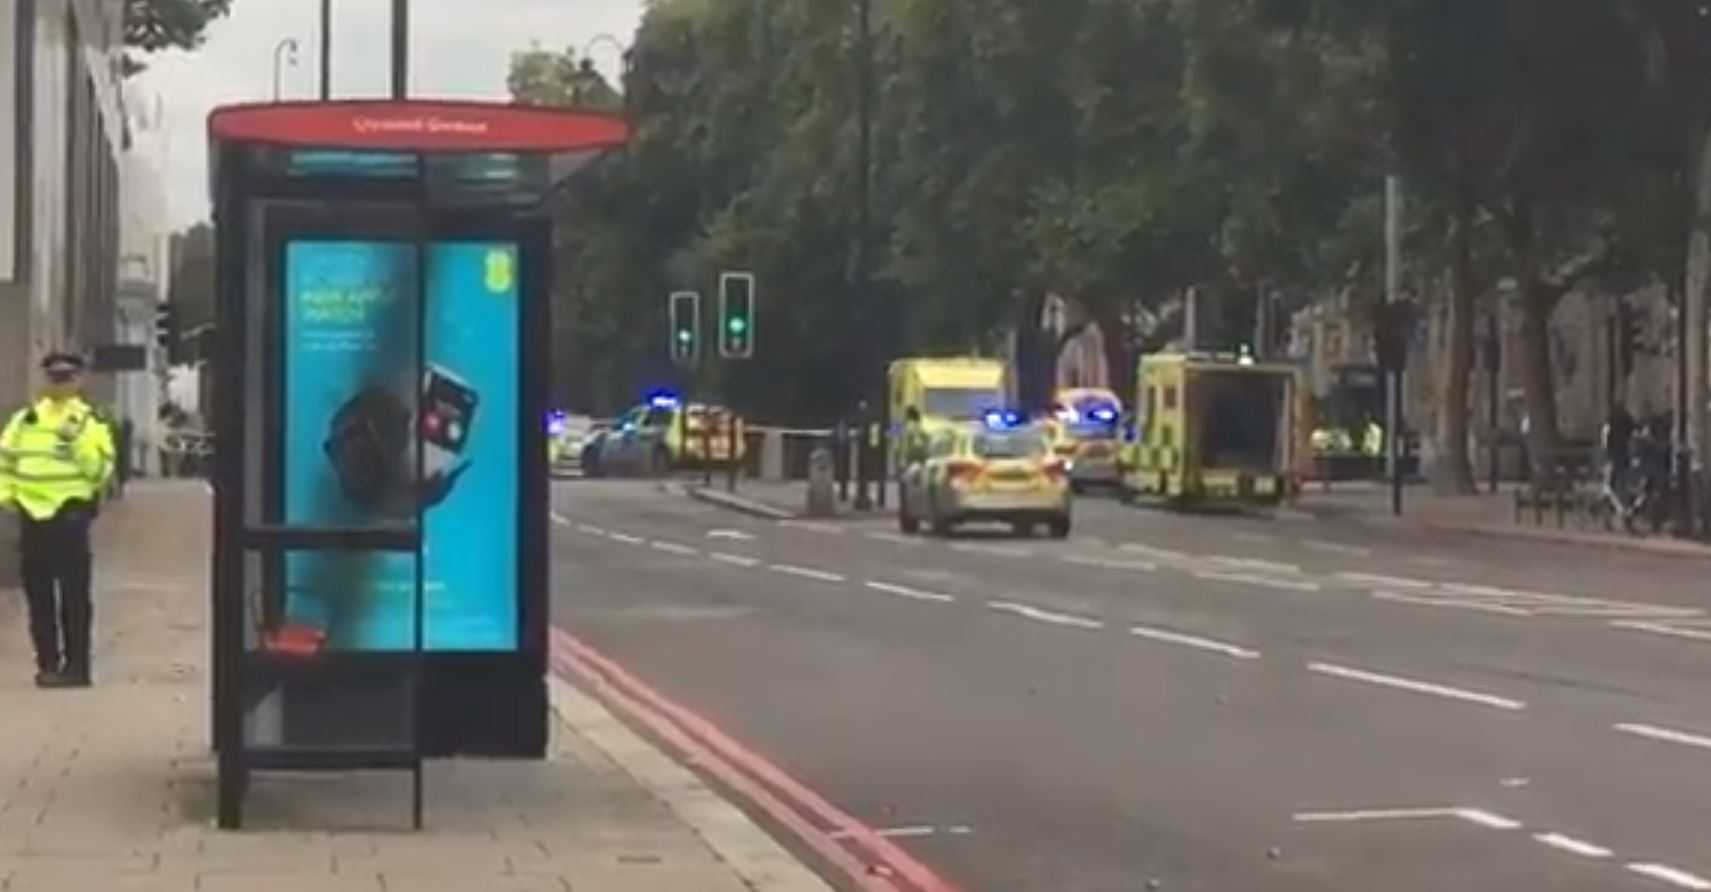 London police arrest man after vehicle hits, injures pedestrians near museum